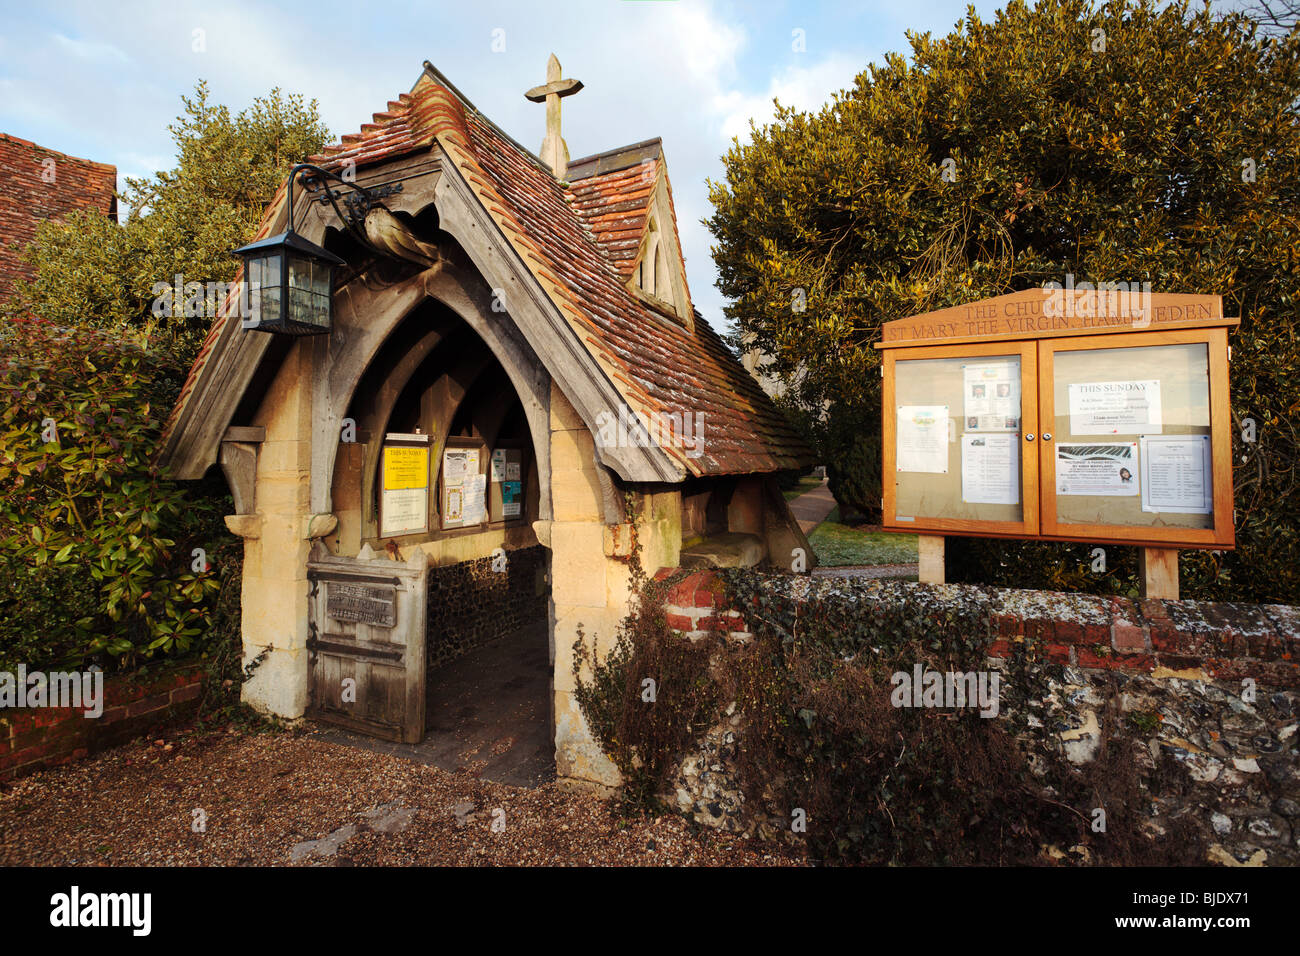 Hambleden Village Church porch and noticeboard Buckinghamshire England UK - Stock Image